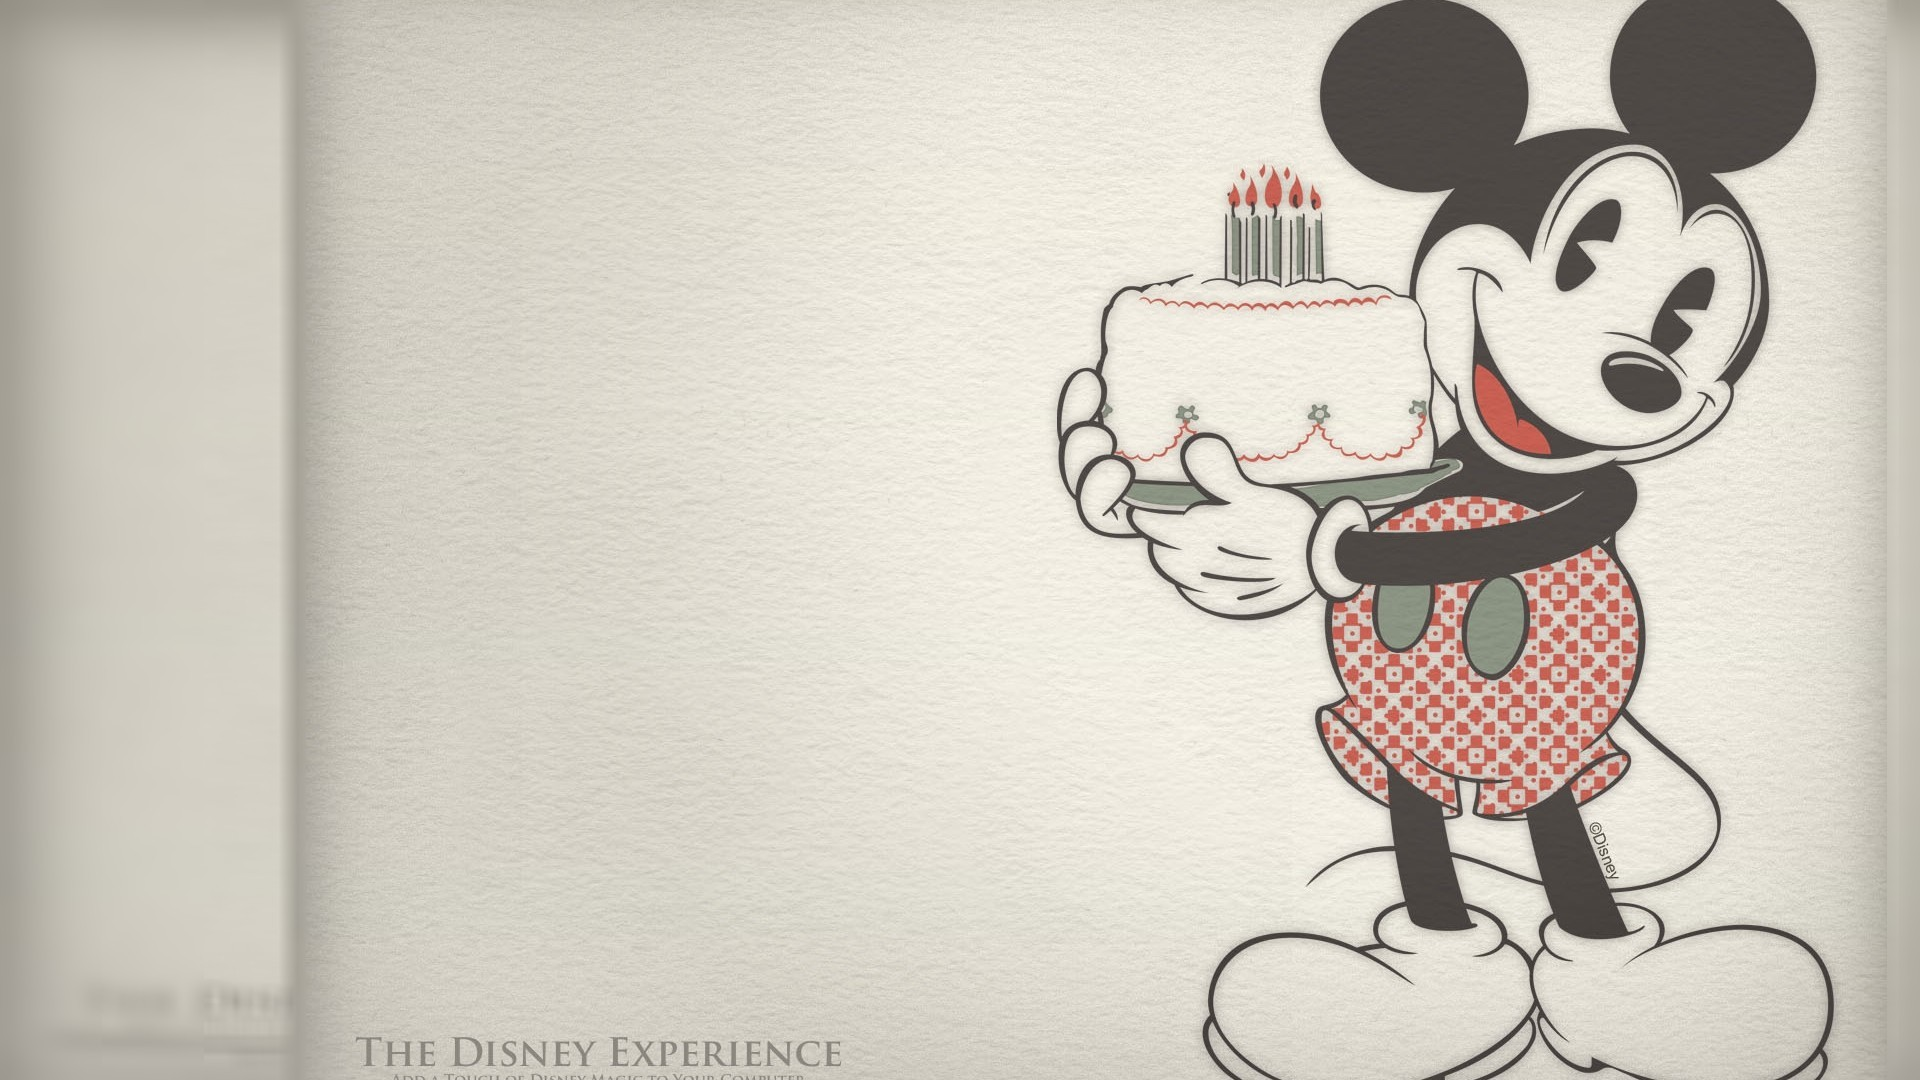 Black Cartoon Wallpaper 55 Image Collections Of: Wallpaper Happy Birthday Cake (55+ Images